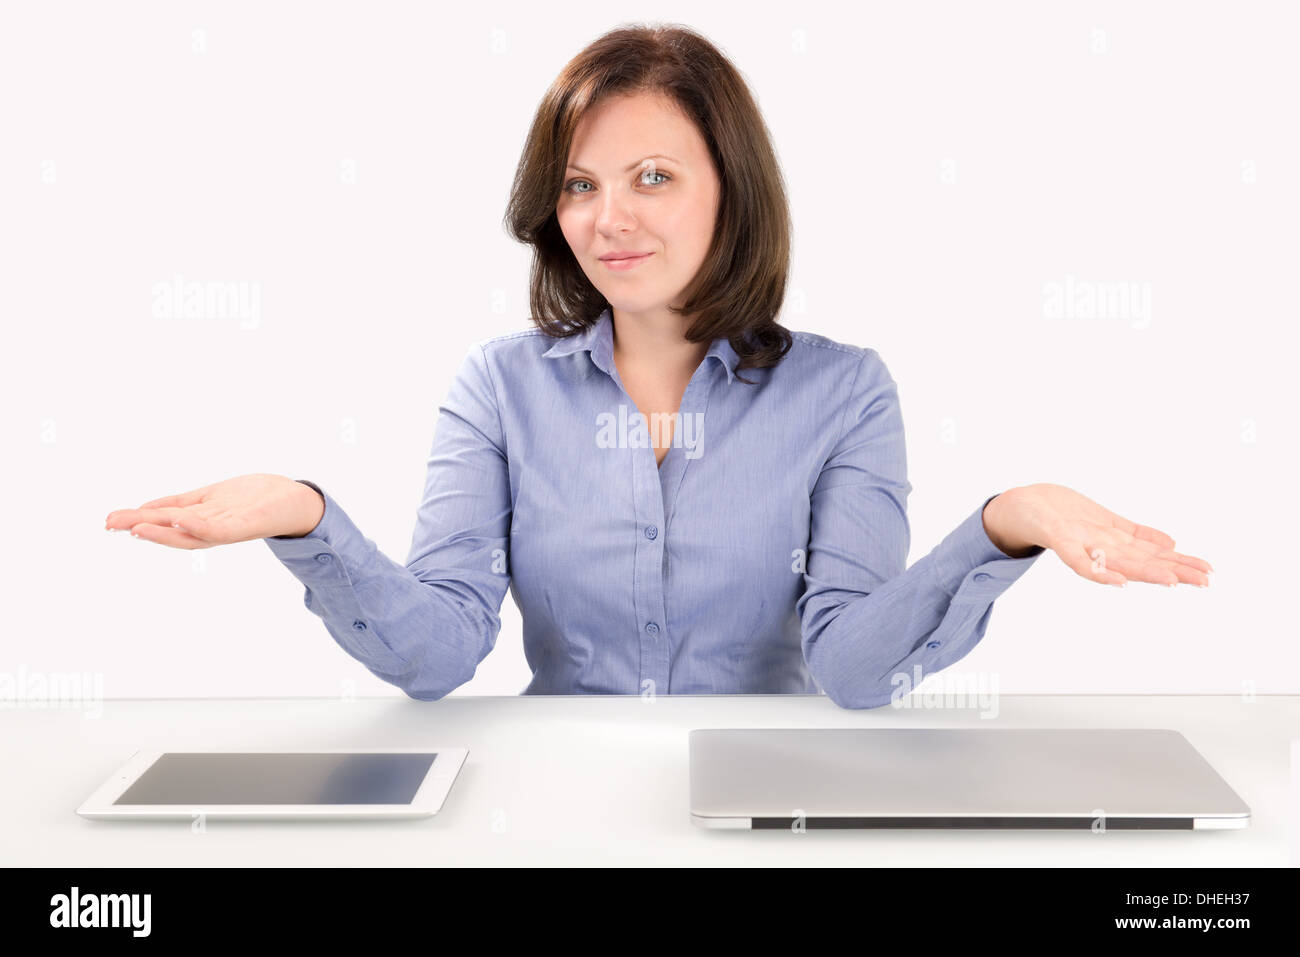 Business woman offers to make a choice between a tablet computer and a laptop, business concept - Stock Image